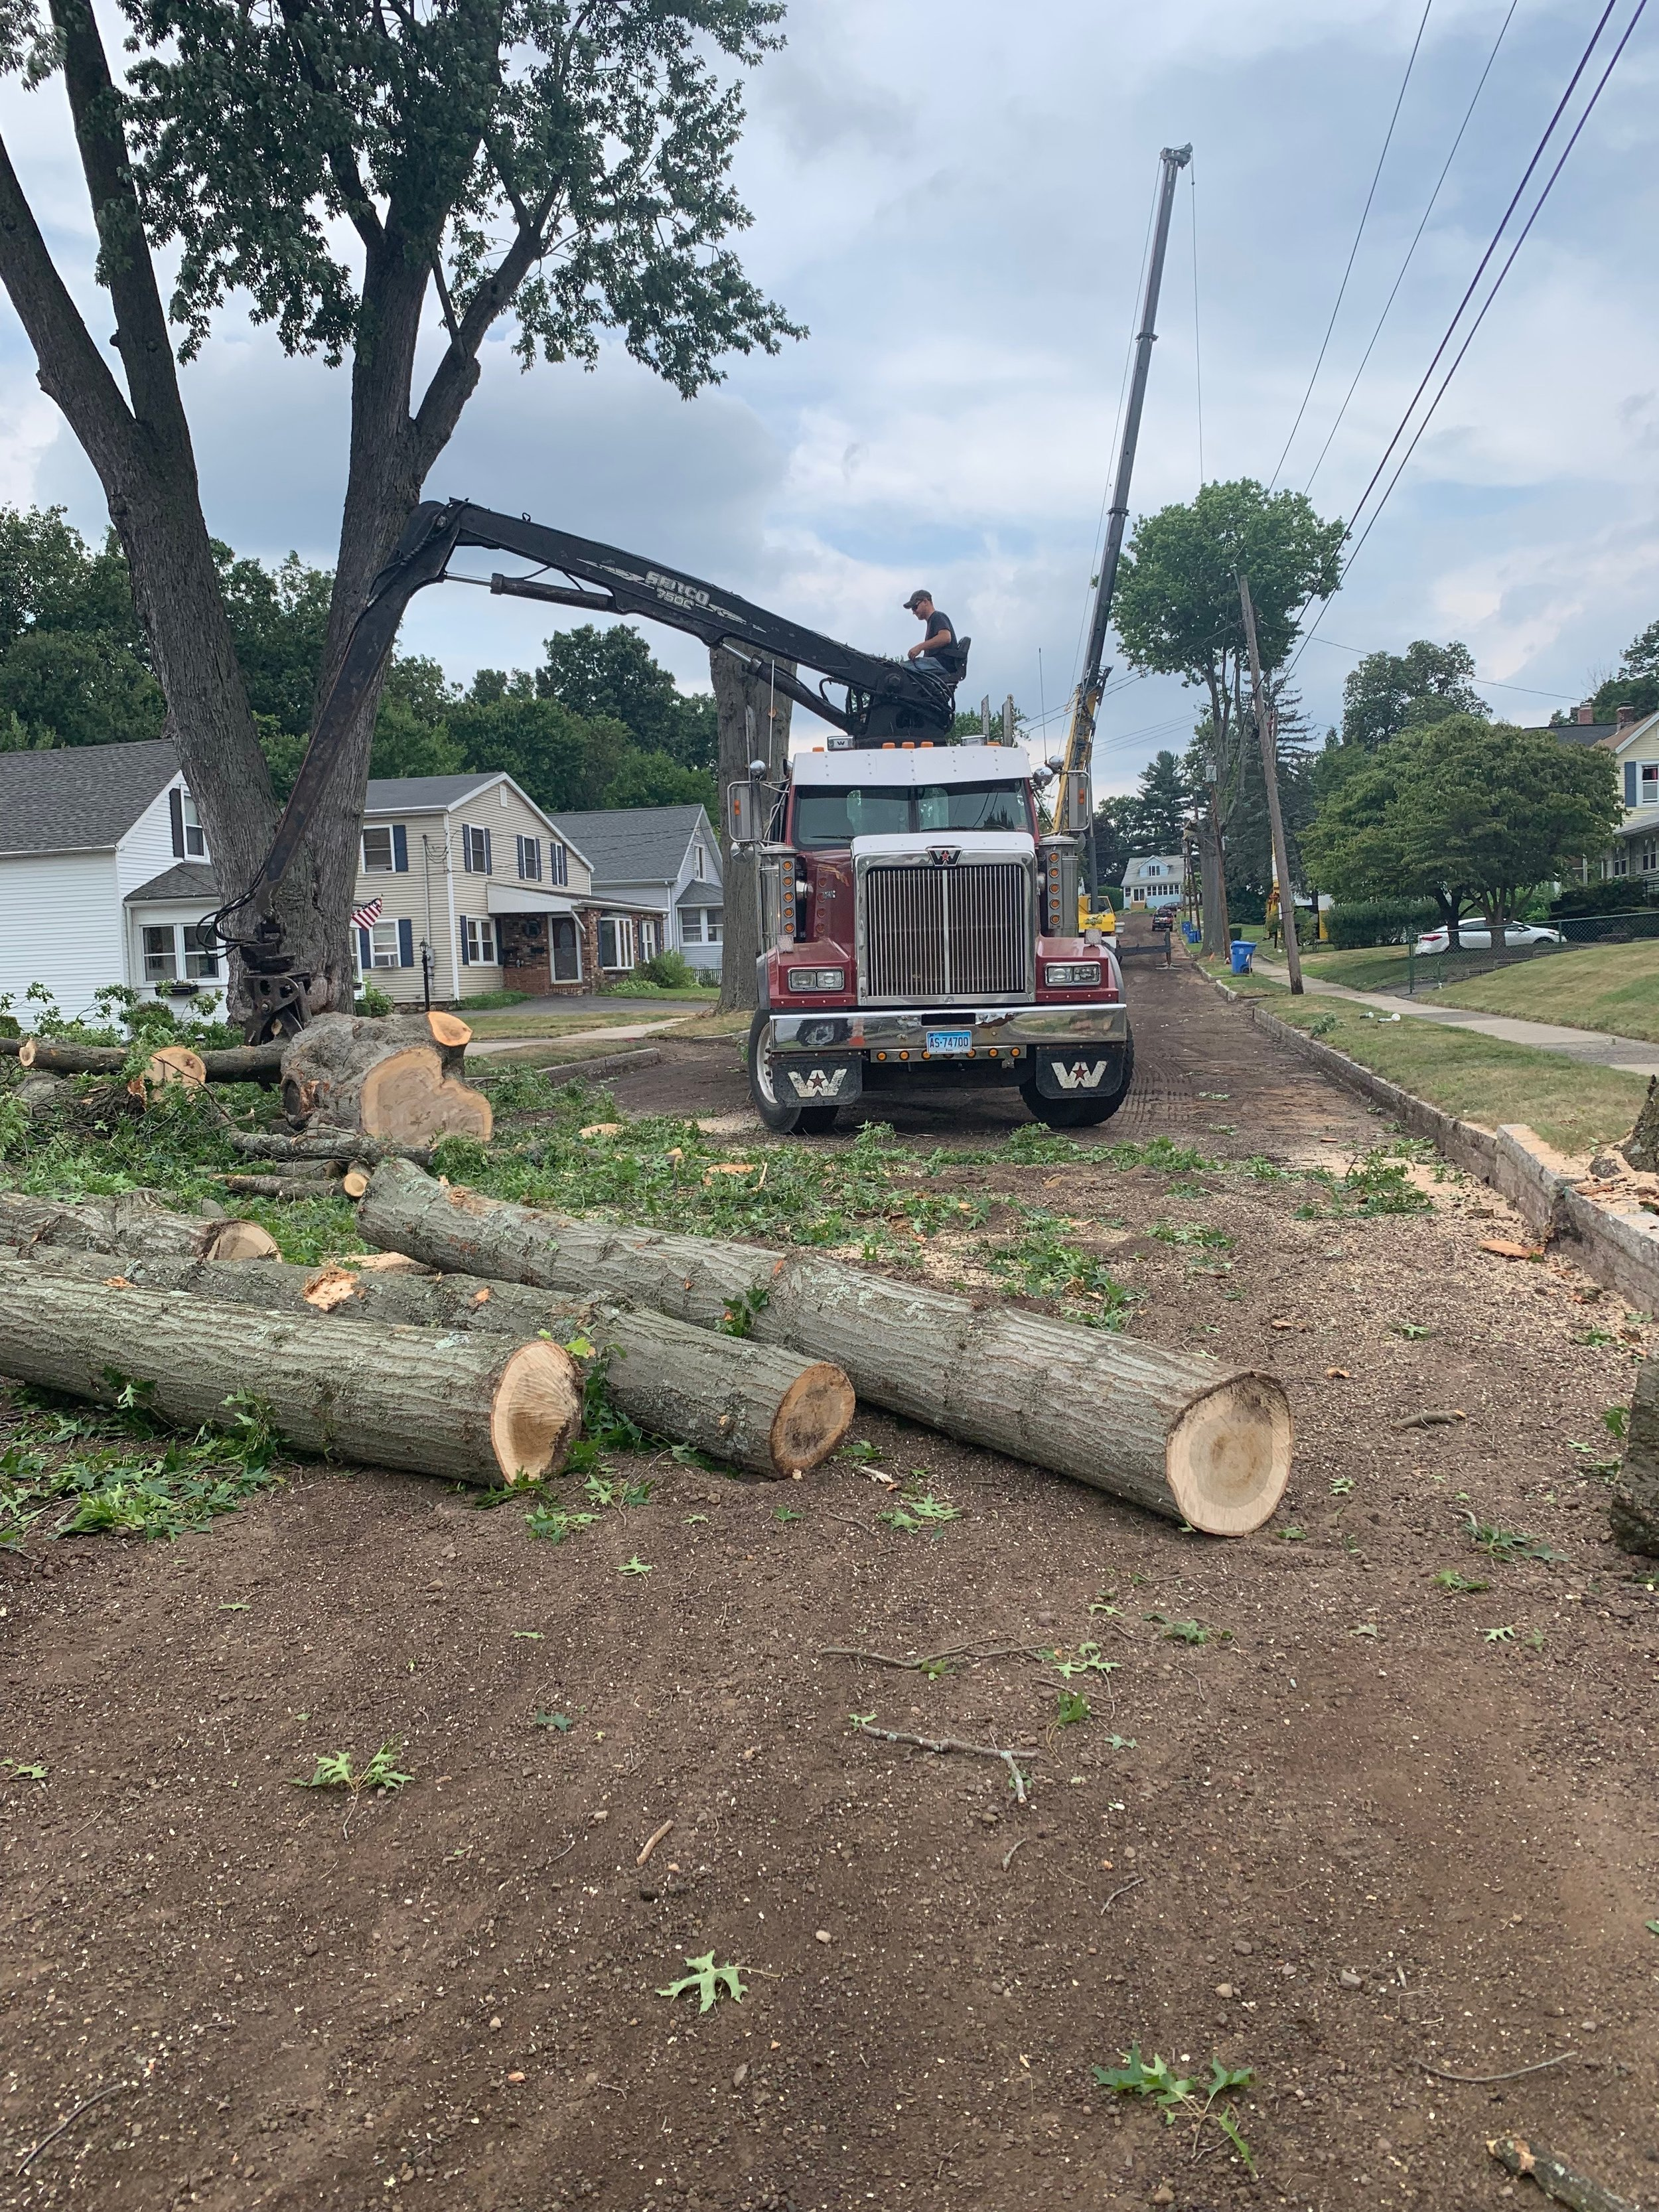 August, 2019 - Tree trimming and removal near power lines